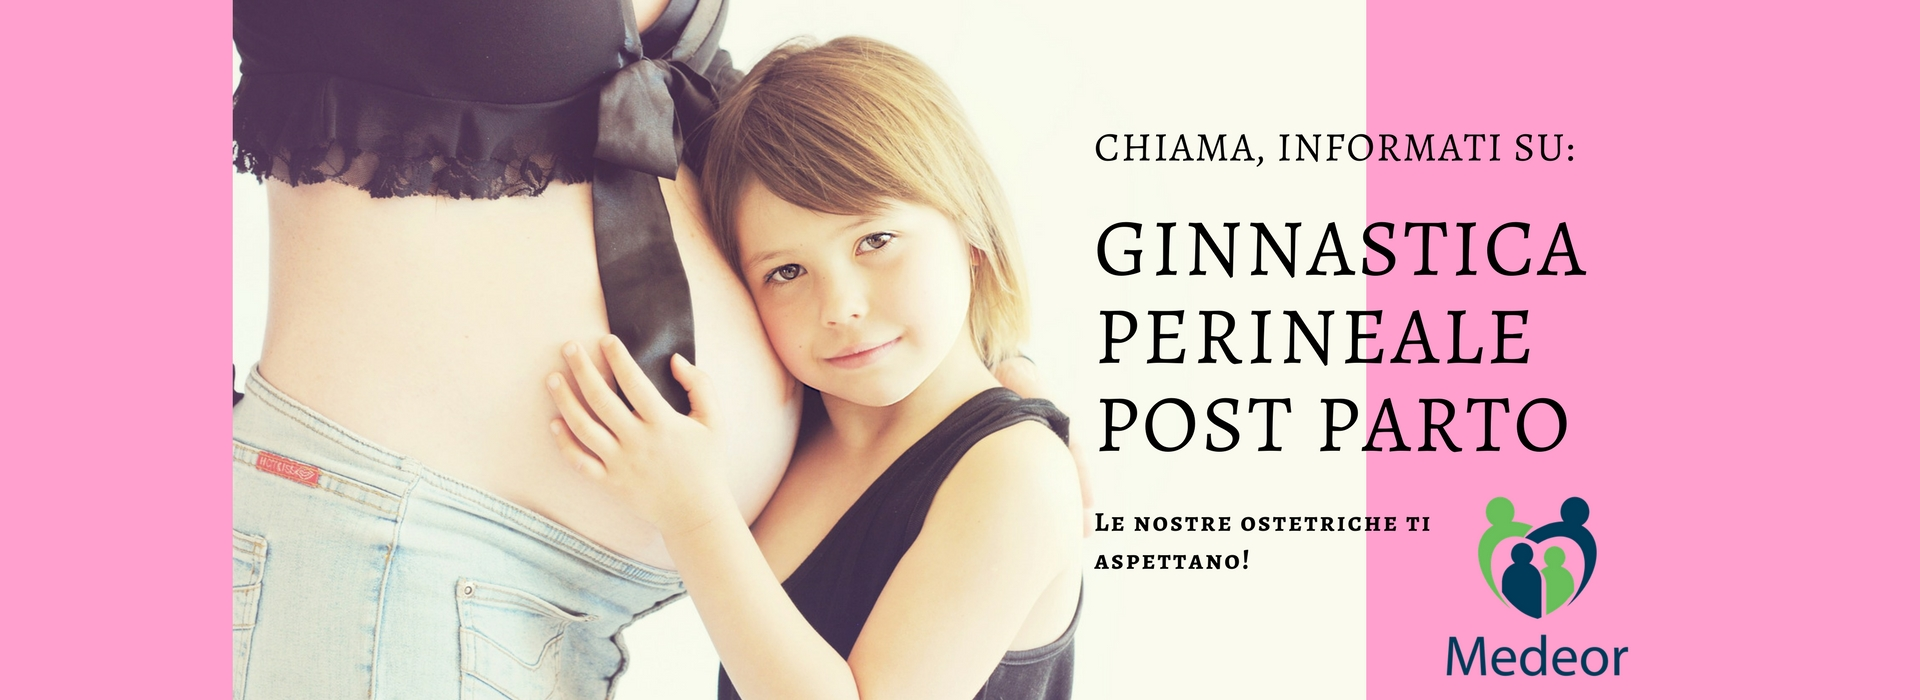 GINNASTICA PERINEALE POST PARTO(1)